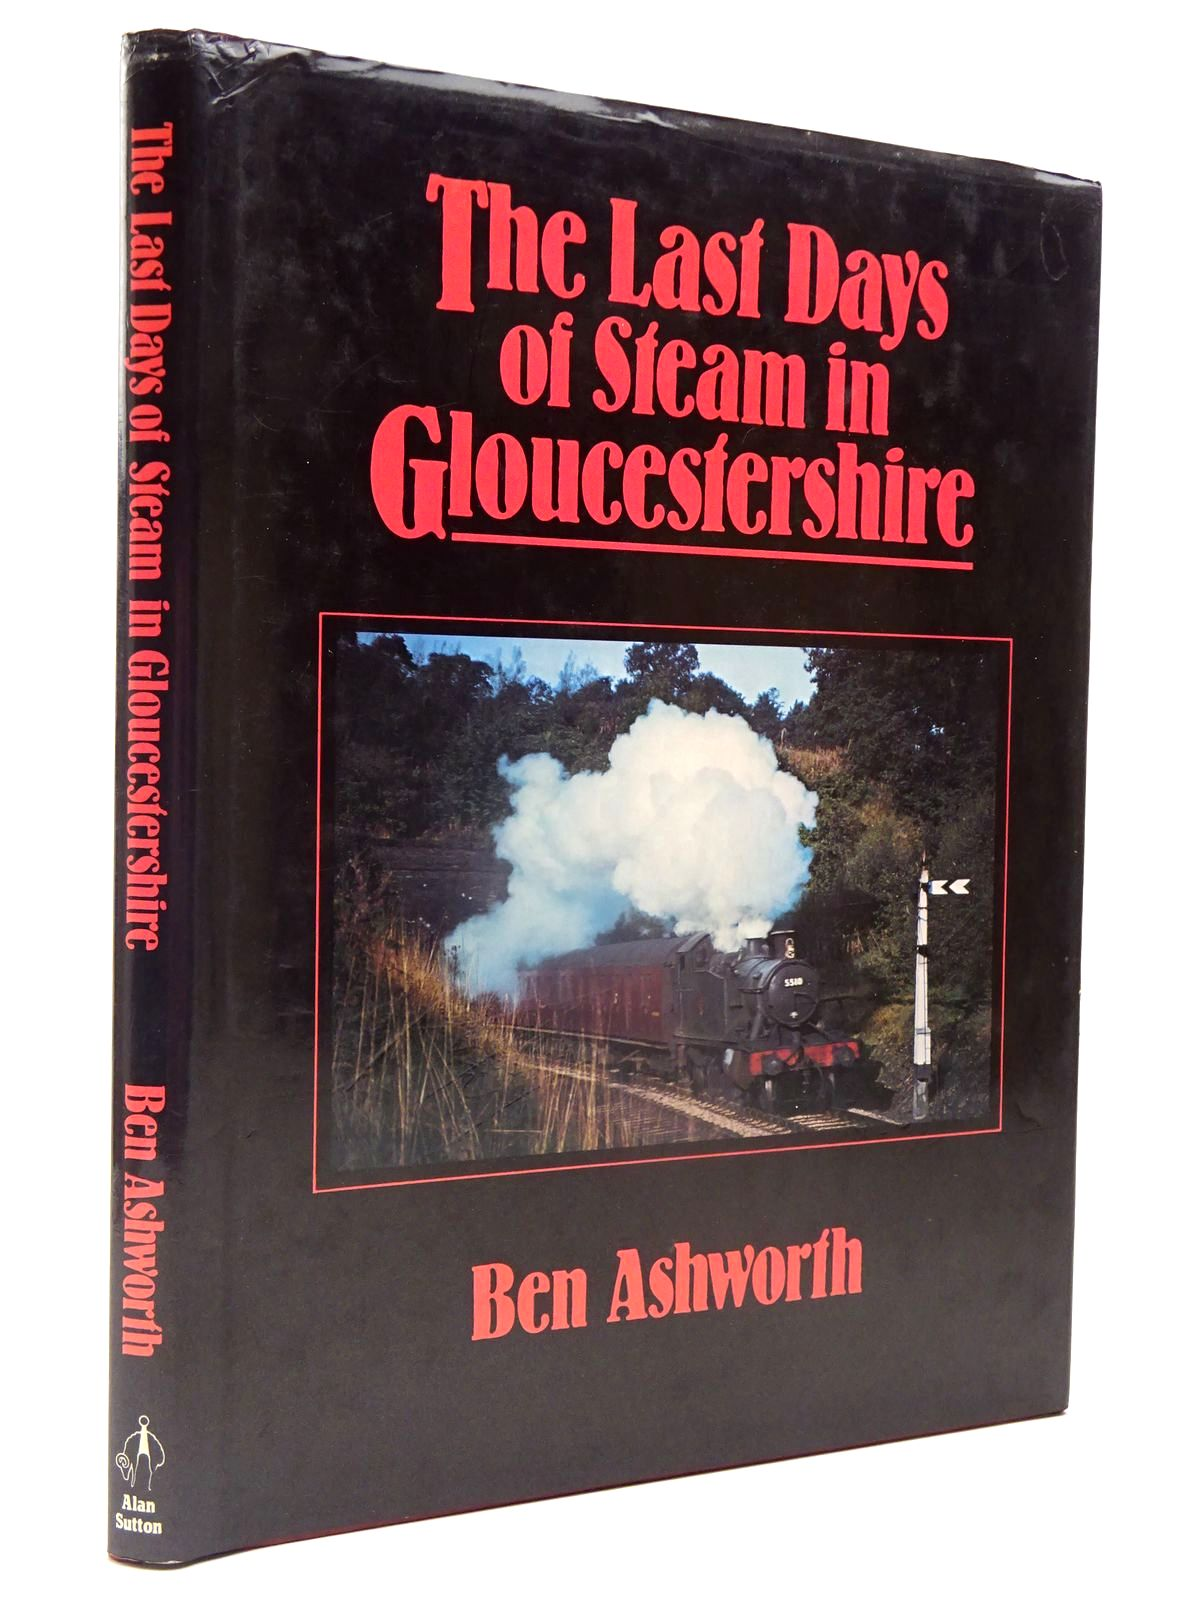 Photo of THE LAST DAYS OF STEAM IN GLOUCESTERSHIRE written by Ashworth, Ben published by Alan Sutton (STOCK CODE: 2130060)  for sale by Stella & Rose's Books